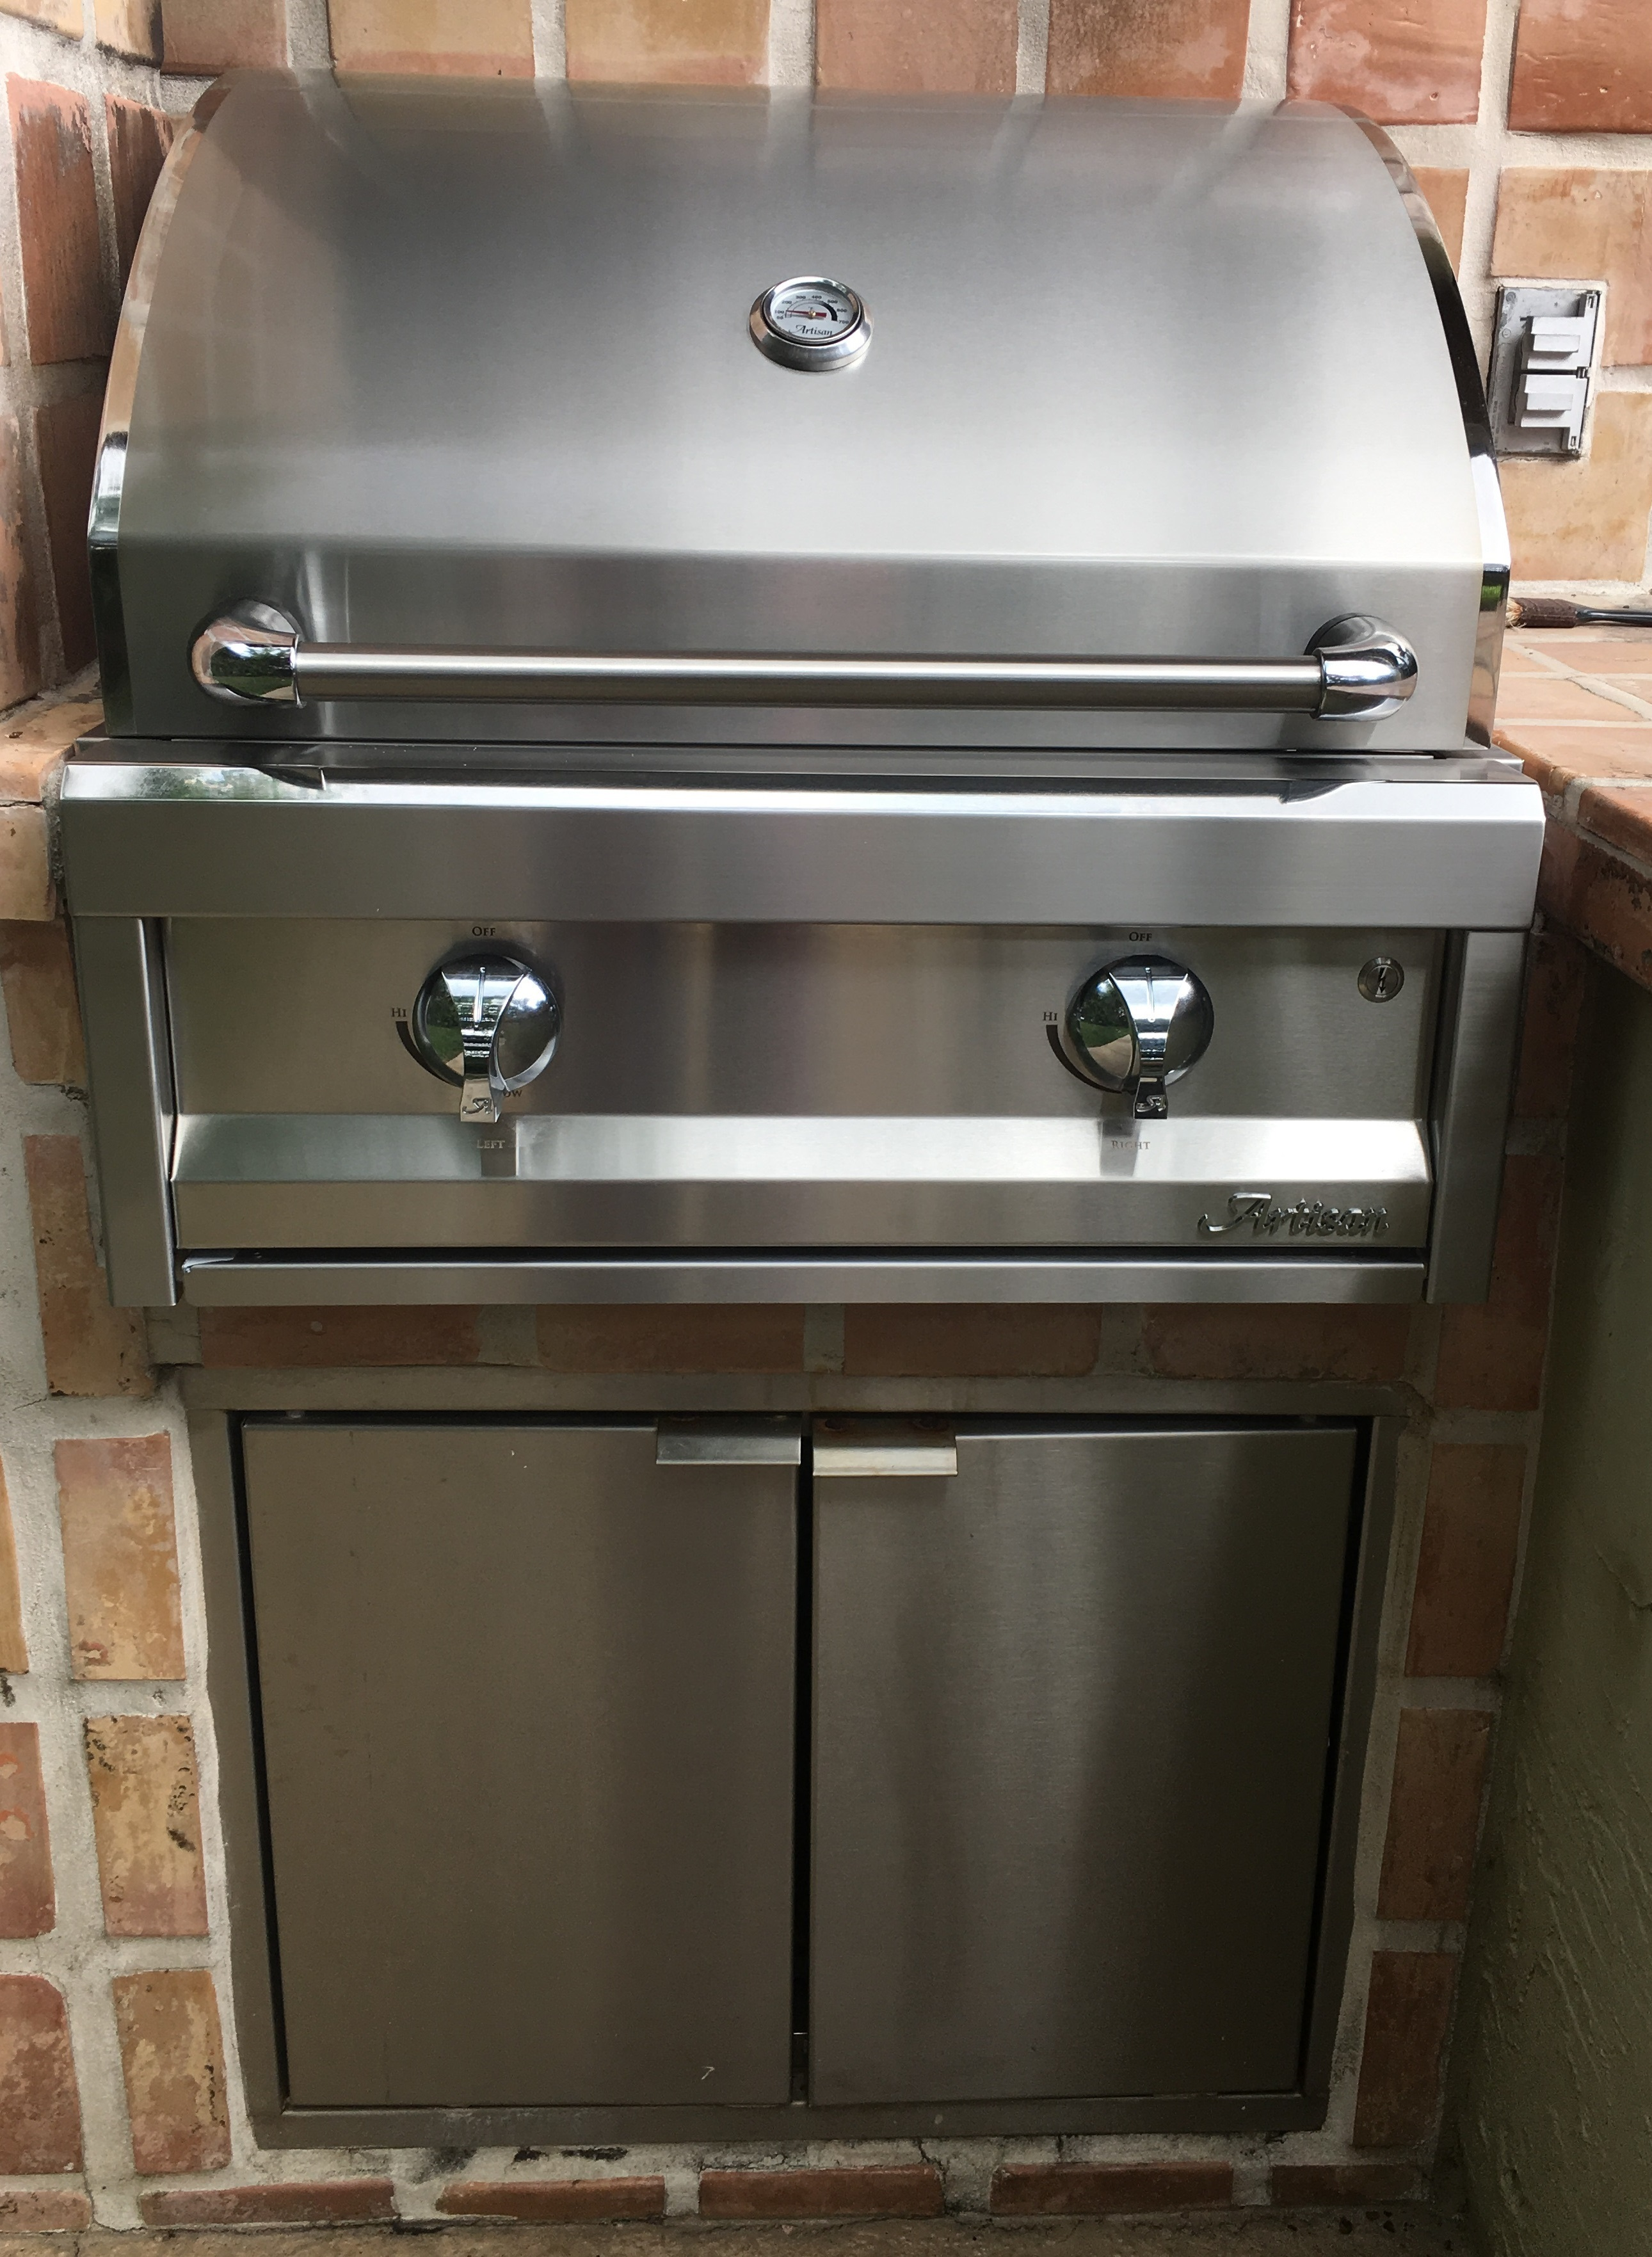 Replacing Your Dcs 27 Built In Grill With An Alfresco Artisan 26